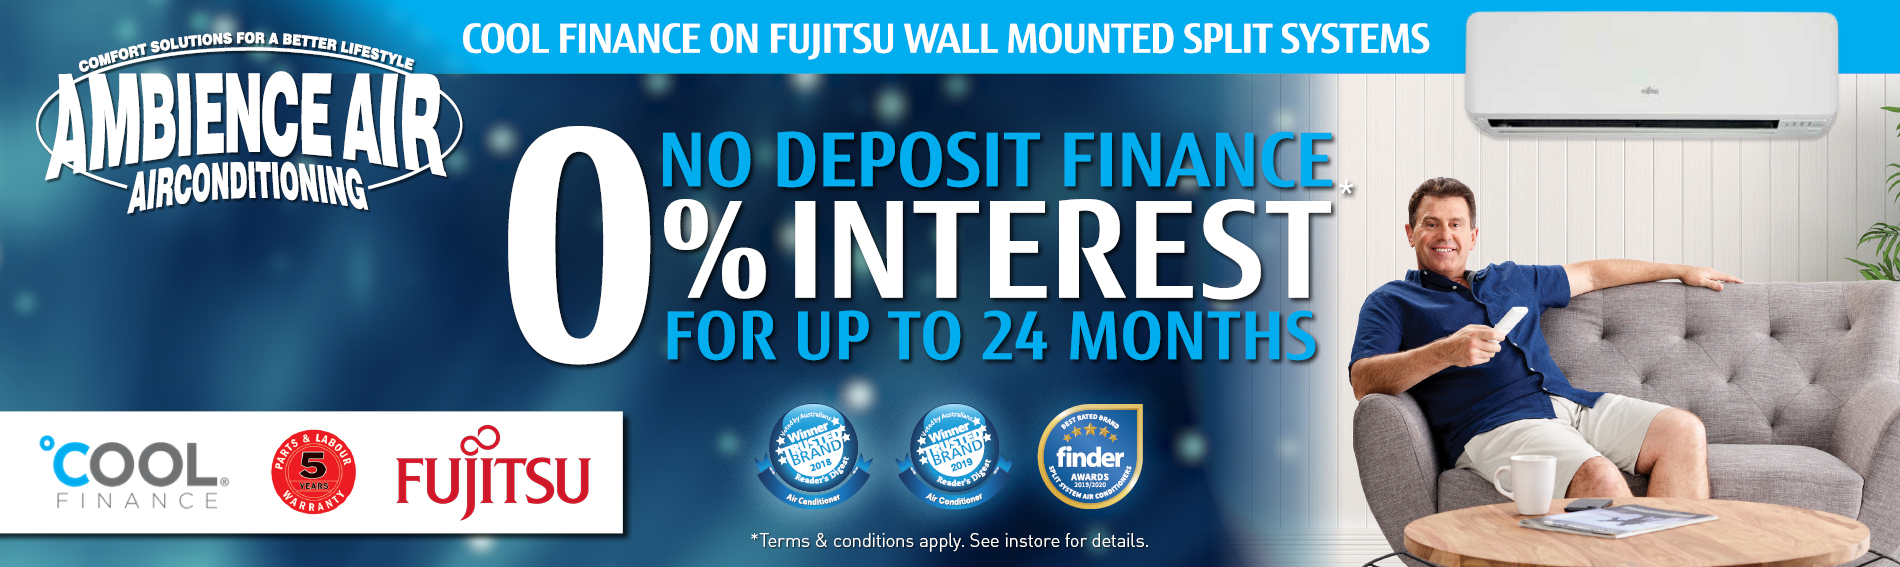 24 months interest free promotion on Fujitsu Split Systems January 2020 promotion - Ambience Air